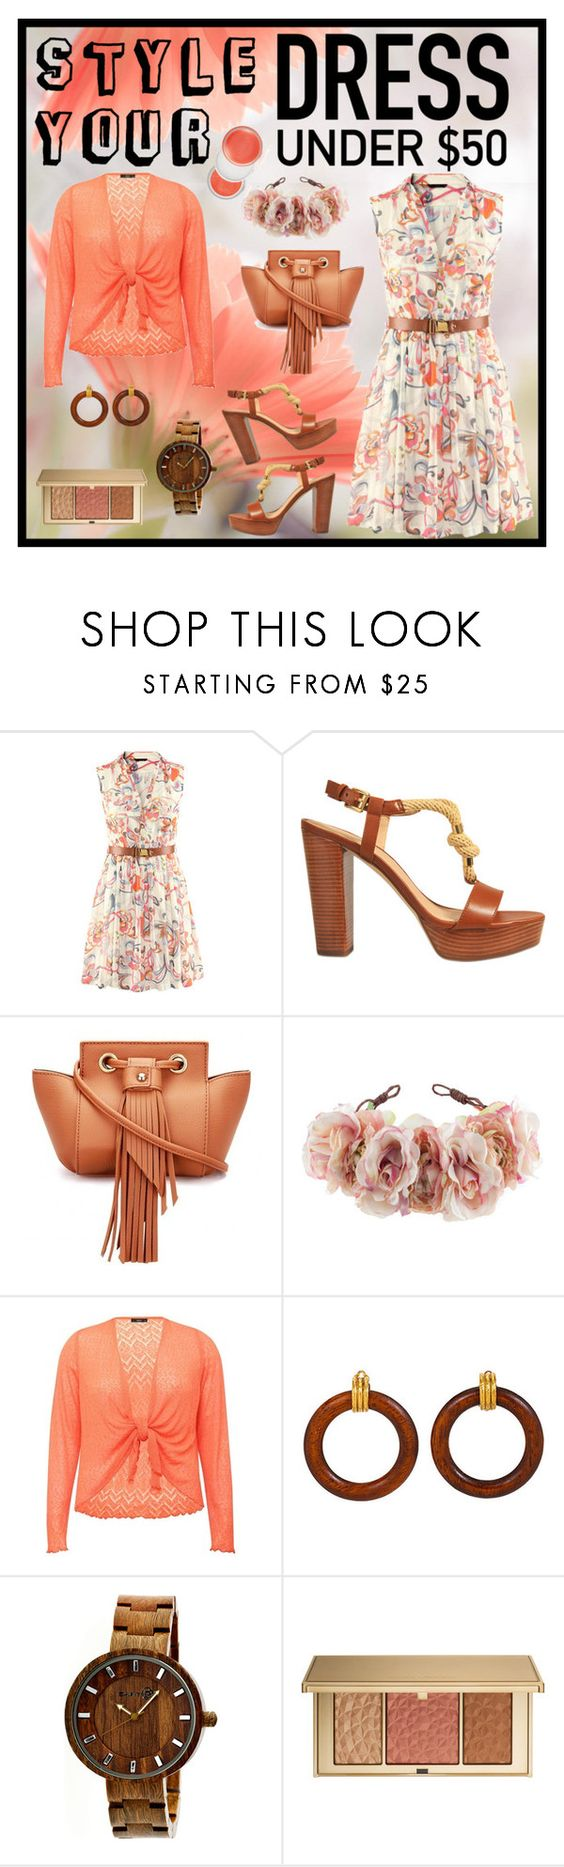 """Dress Under 50 Dollars"" by giovanina-001 ❤ liked on Polyvore featuring MICHAEL Michael Kors, Rock 'N Rose, M&Co, Estée Lauder, Clinique and Dressunder50"